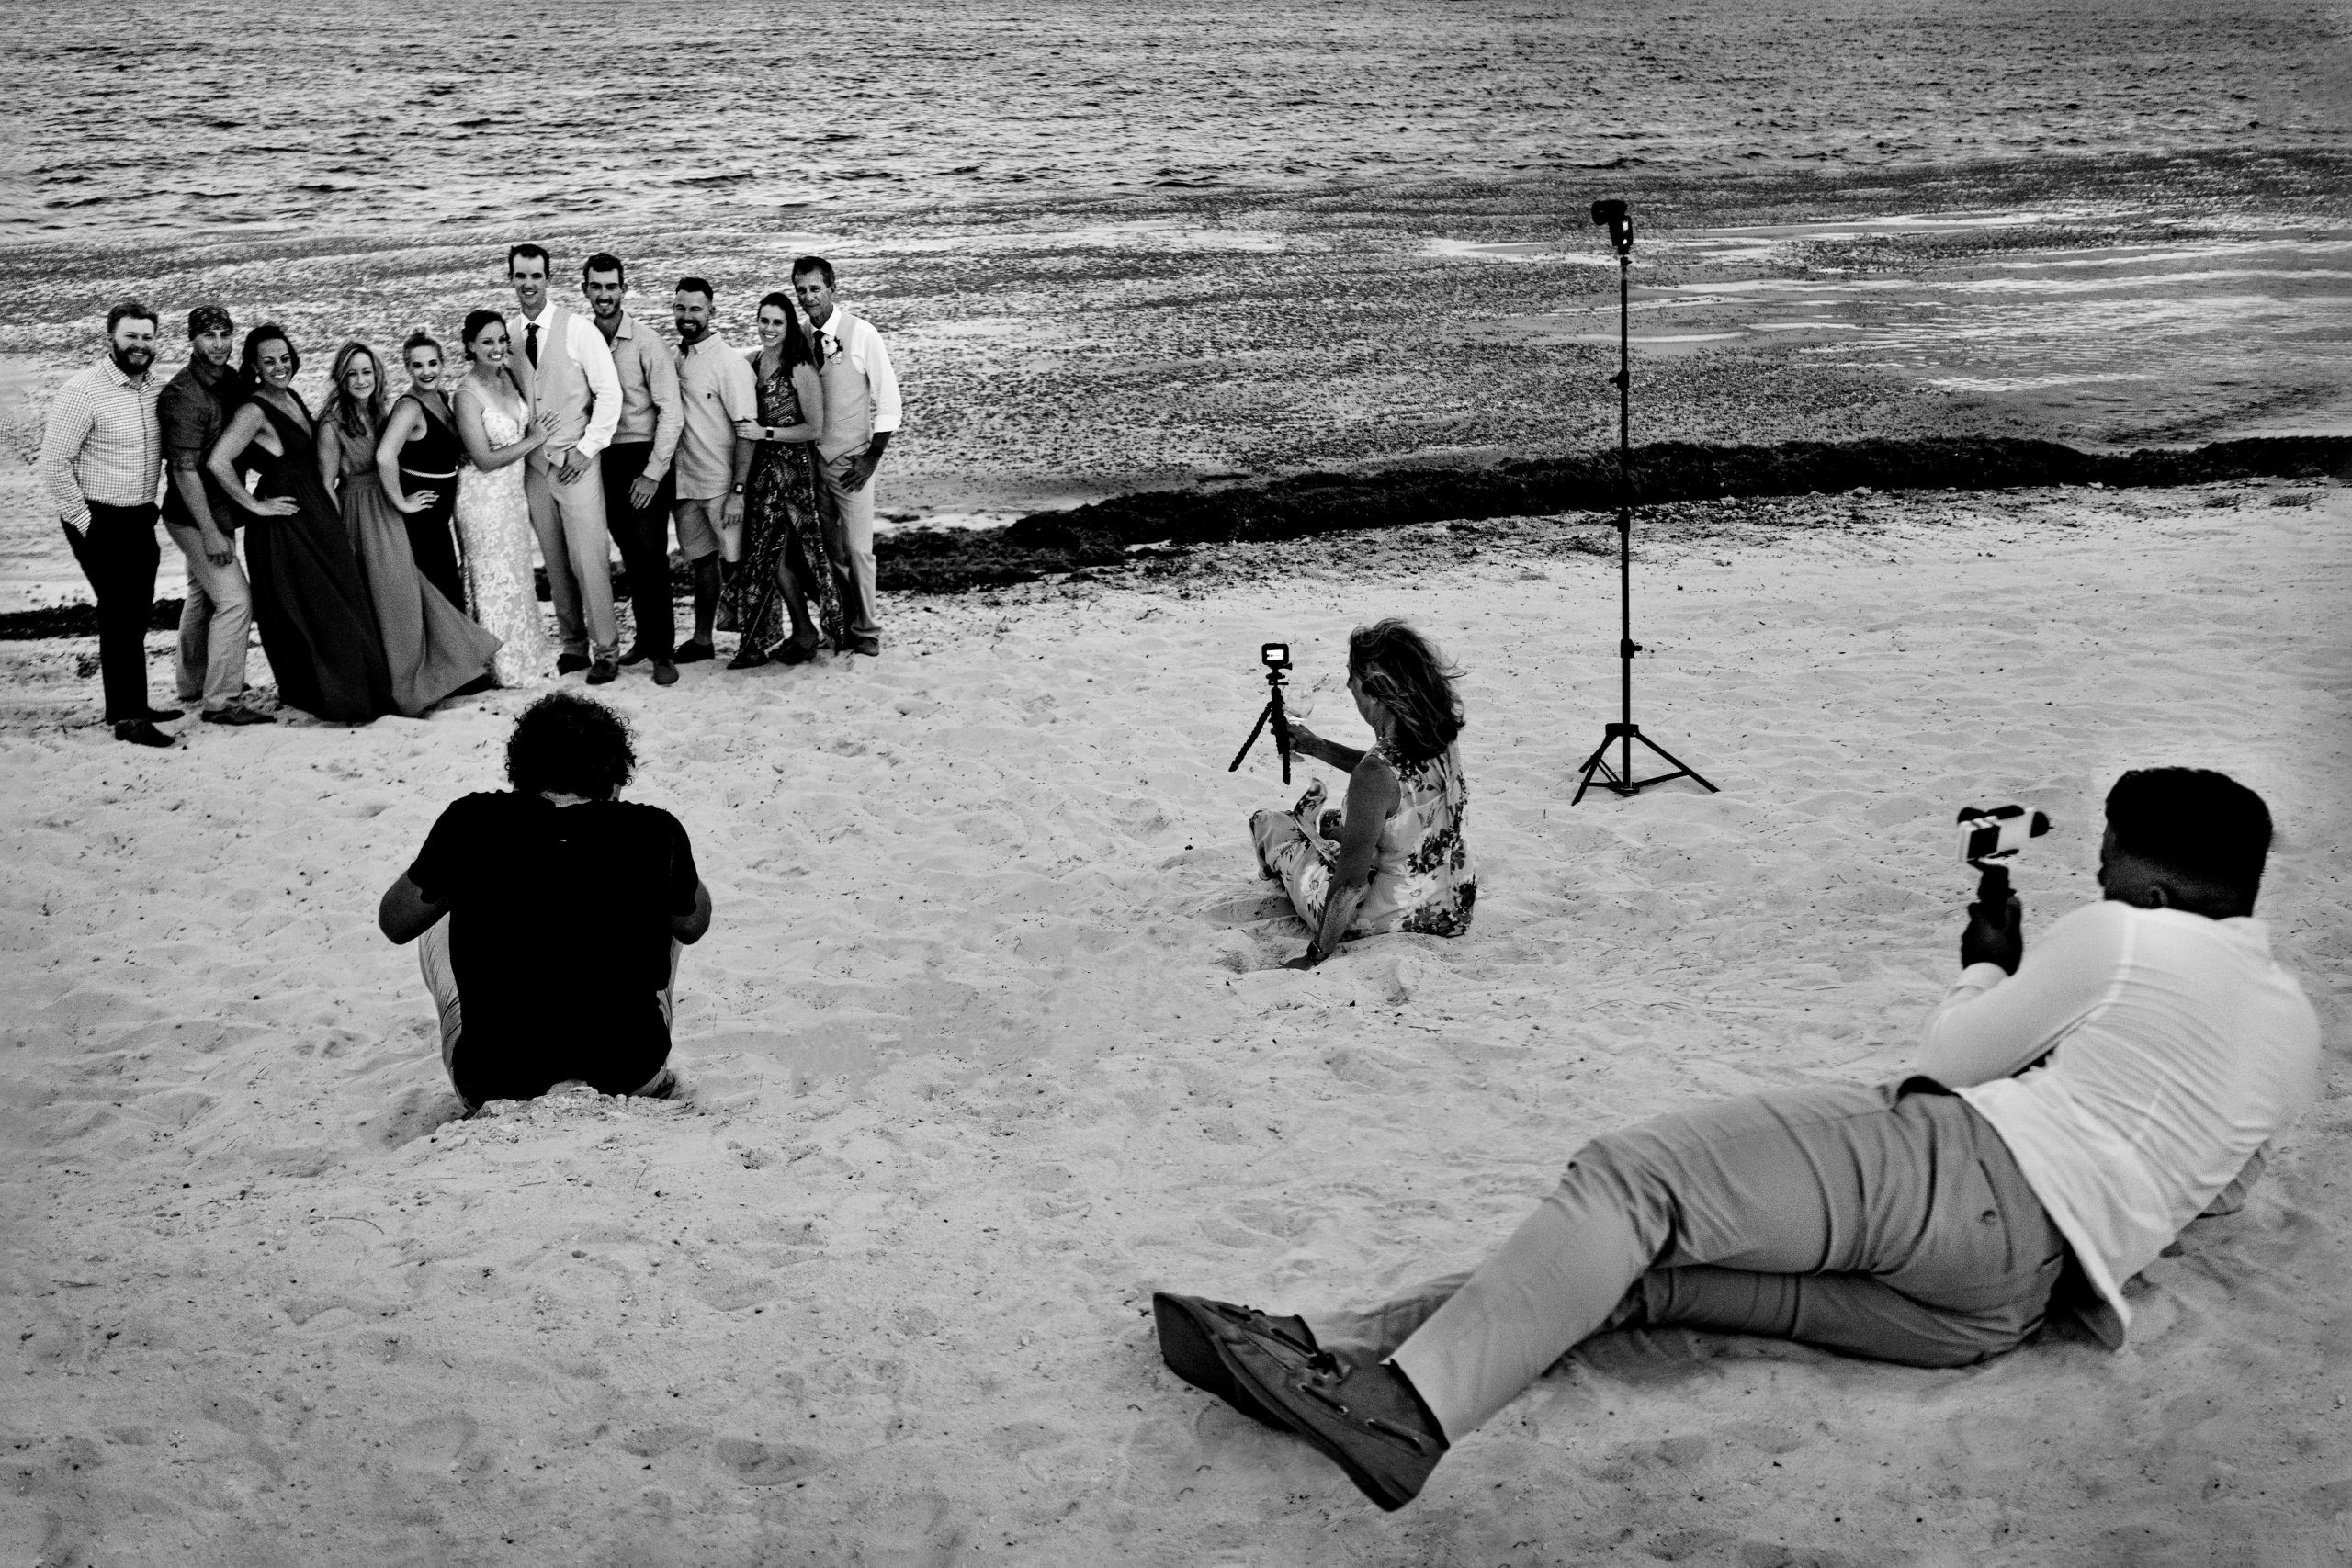 Photographers and videographers lay beachside to capture a group wedding photo